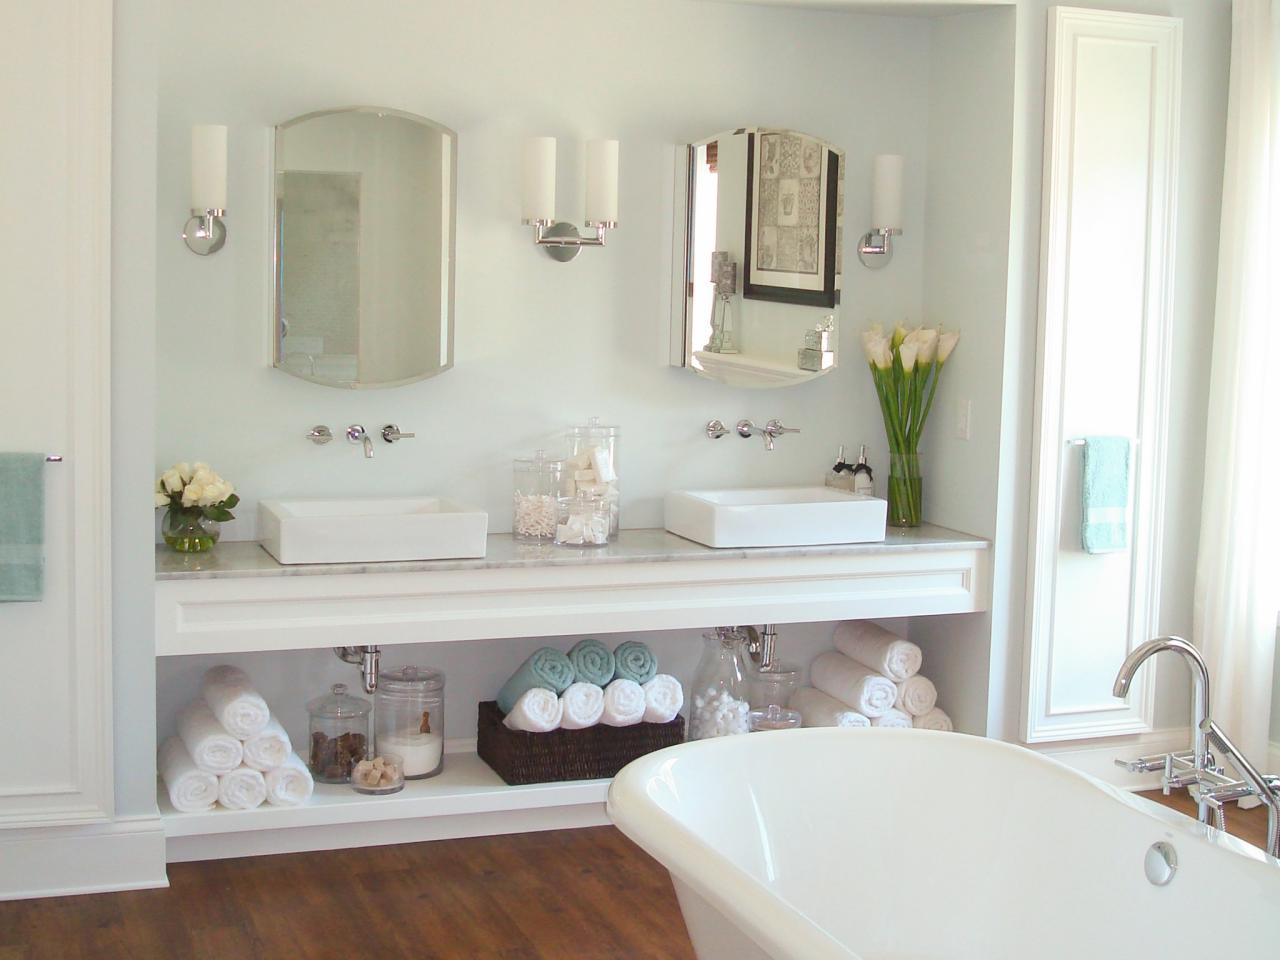 Inspirational Vanity Organizer | Hgtv with regard to Bathroom Vanity Storage